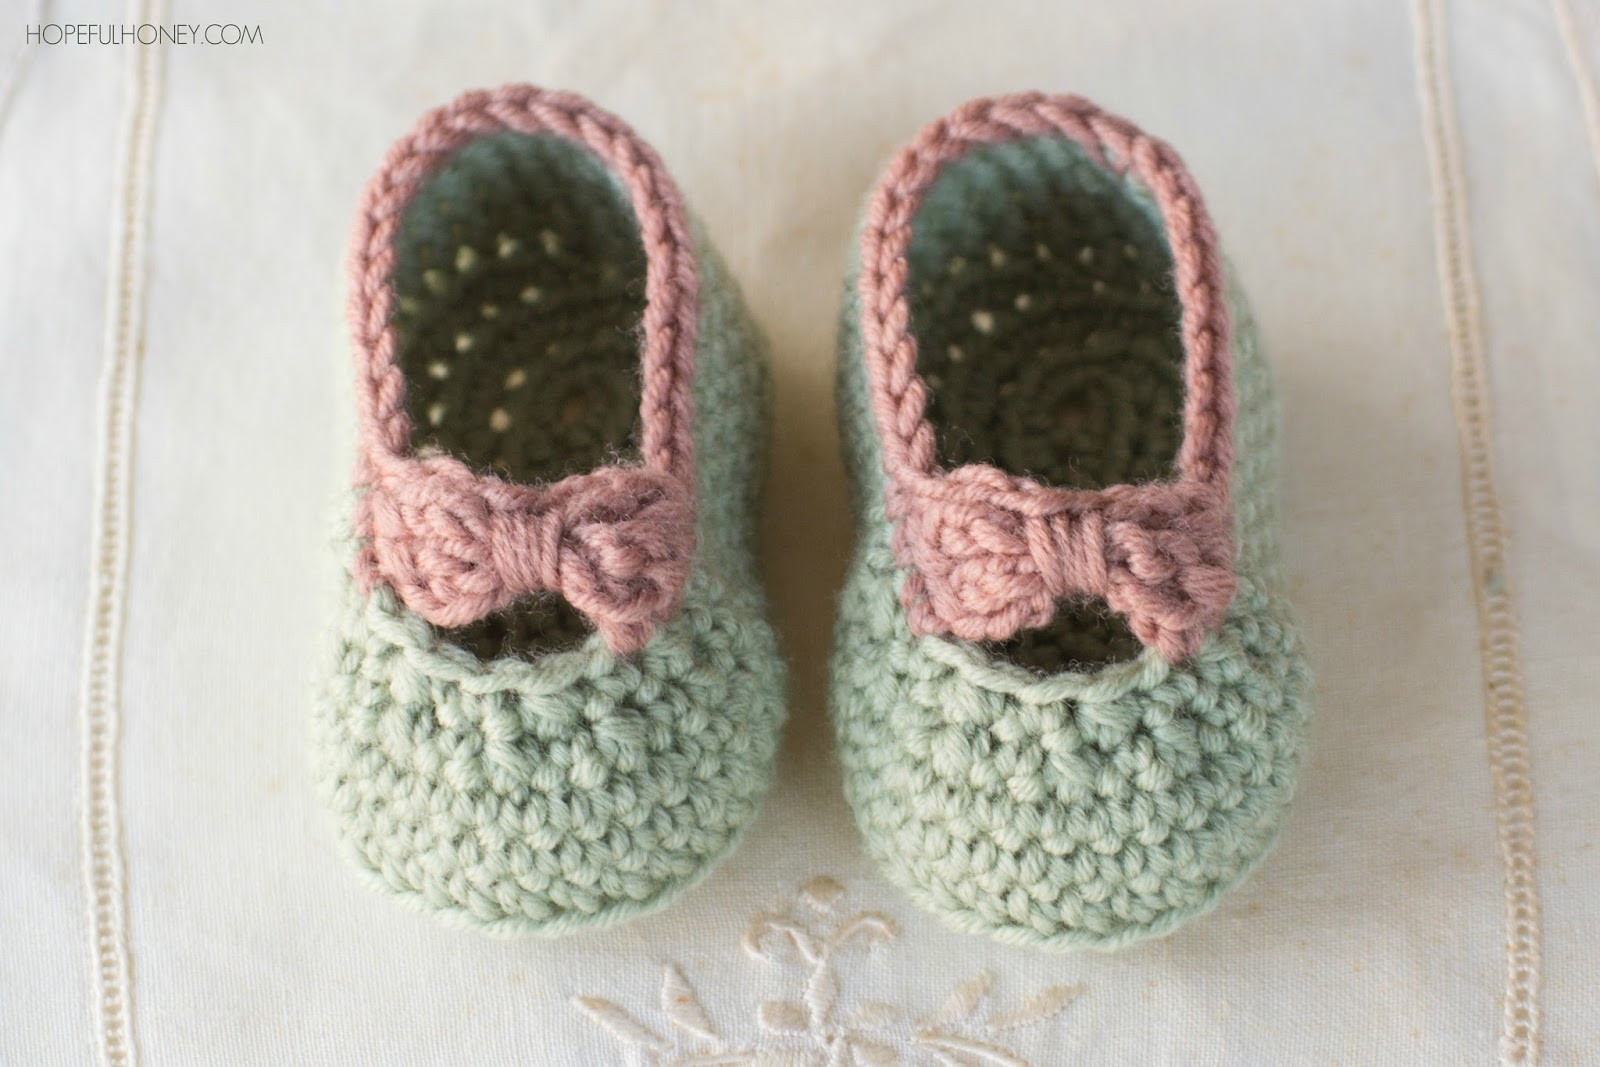 Crochet Baby Booties Fresh Get Better Than Best Baby Booties Crochet Pattern Of Crochet Baby Booties Fresh Crochet Baby Mary Jane Booties Free Patterns